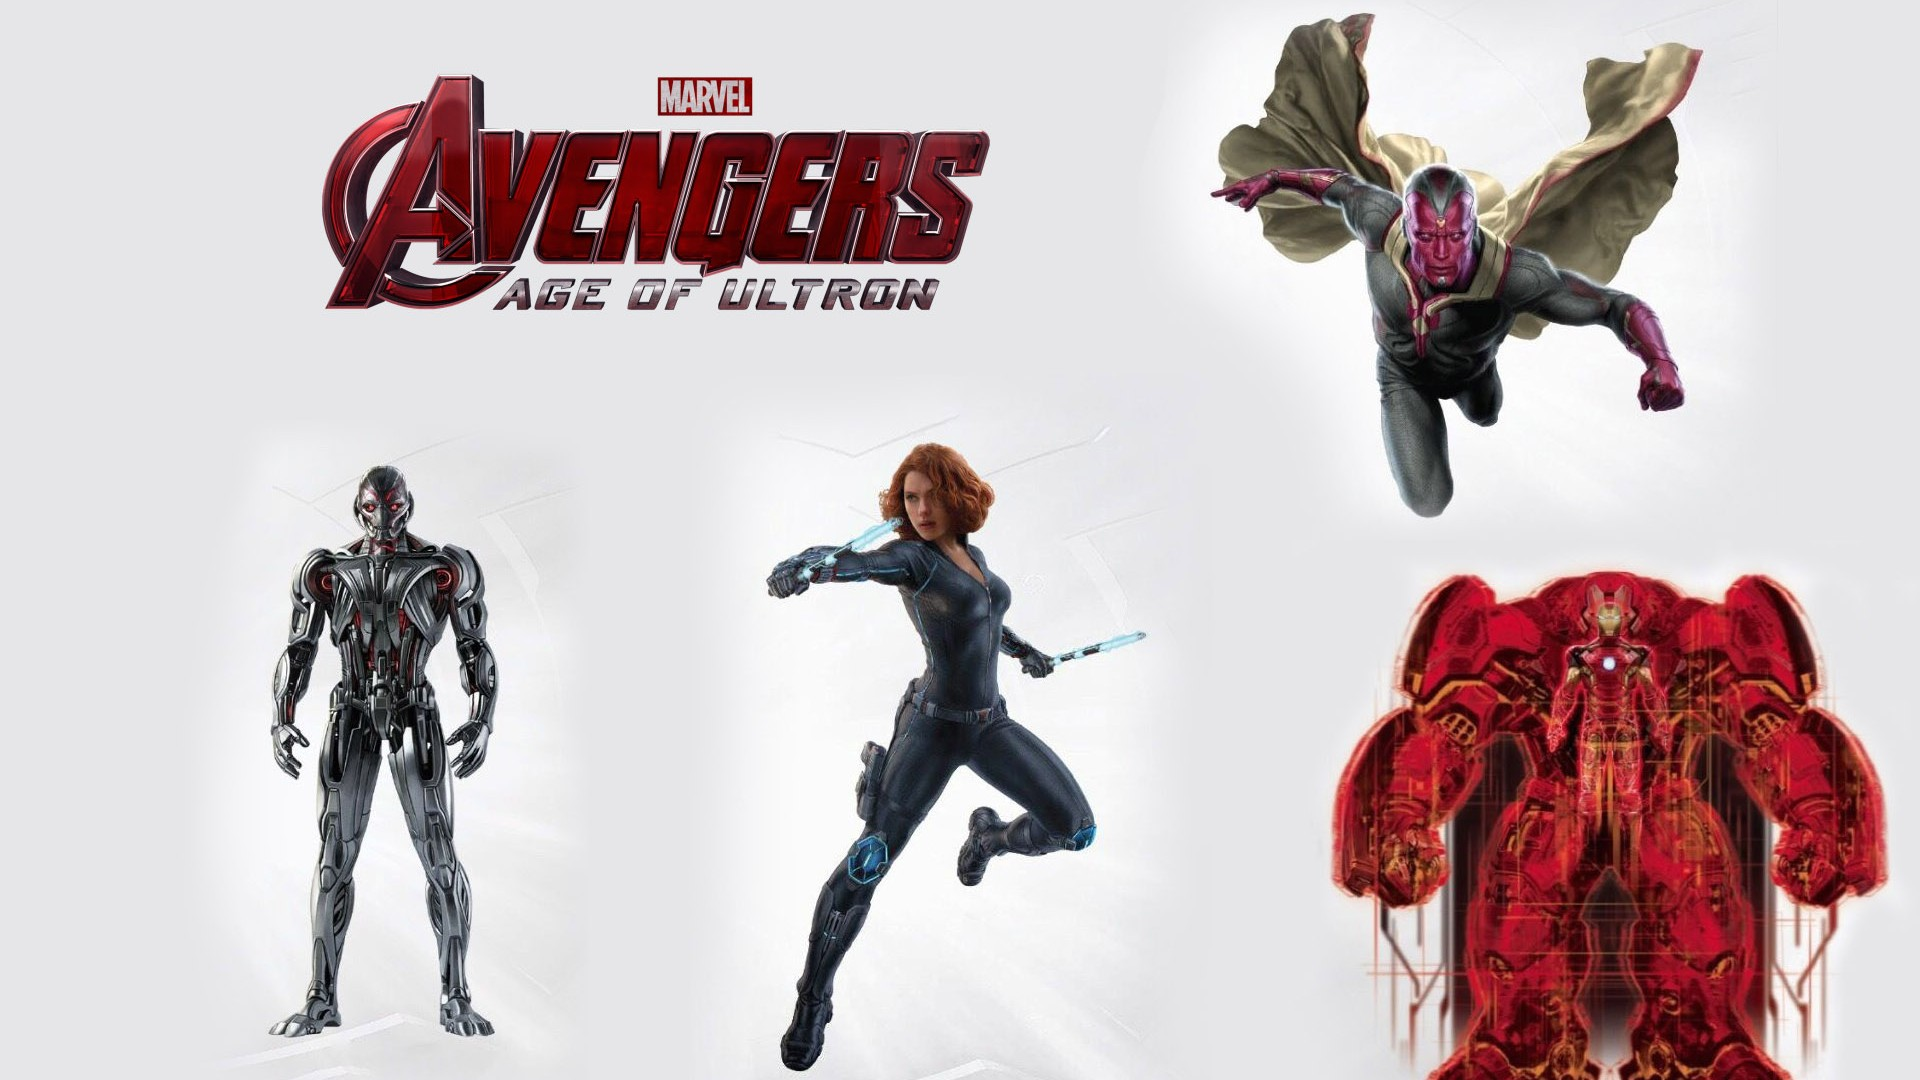 Avengers Age Of Ultron Marvel Poster HD Wallpaper Search more high 1920x1080